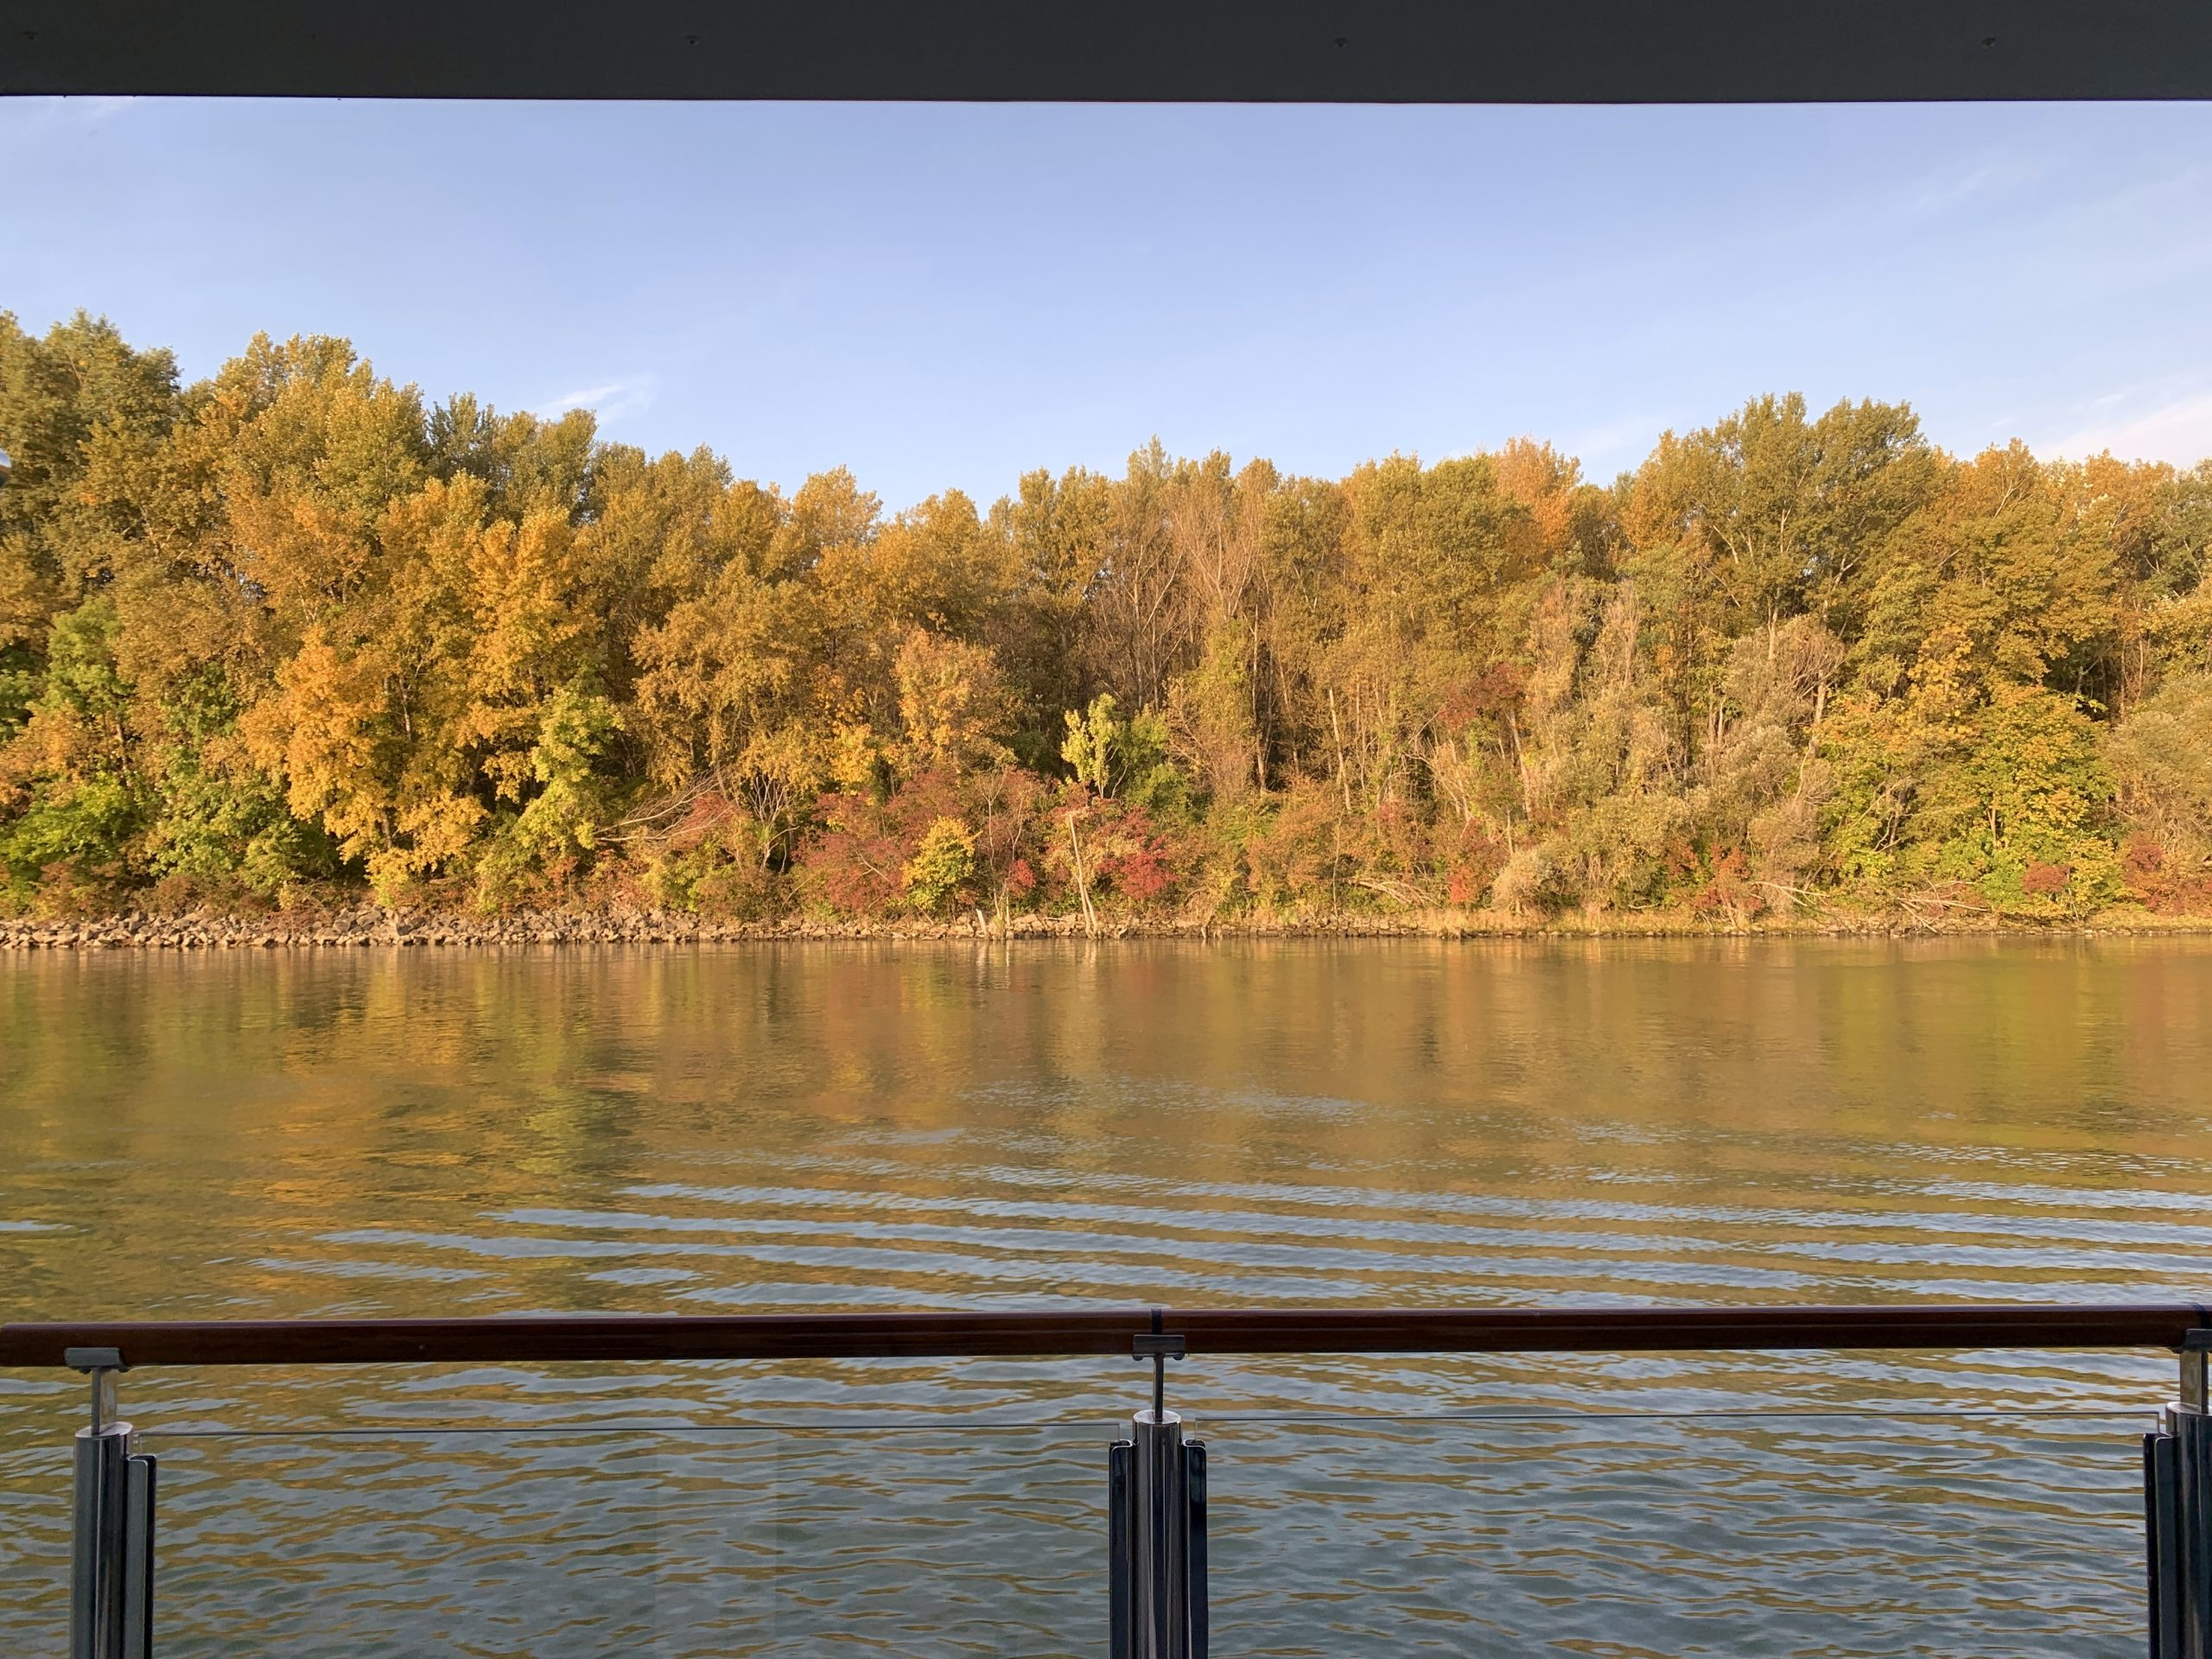 view from the AmaMagna on the Melodies of the Danube river cruise